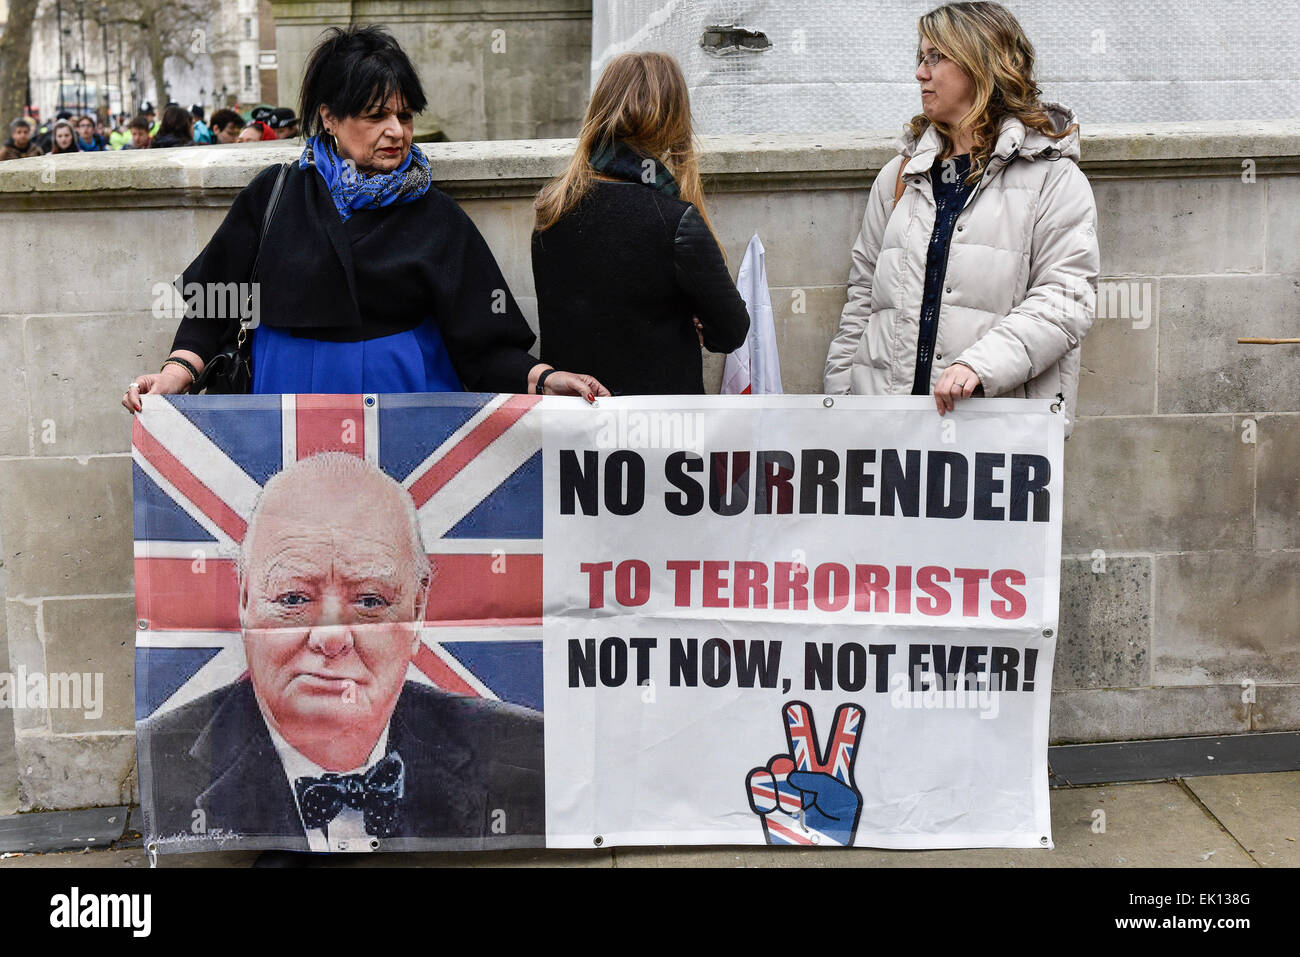 London, UK. 4th April, 2015. Members of Pegida, demonstrated in Whitehall today as police clashed with anti-fascists. - Stock Image